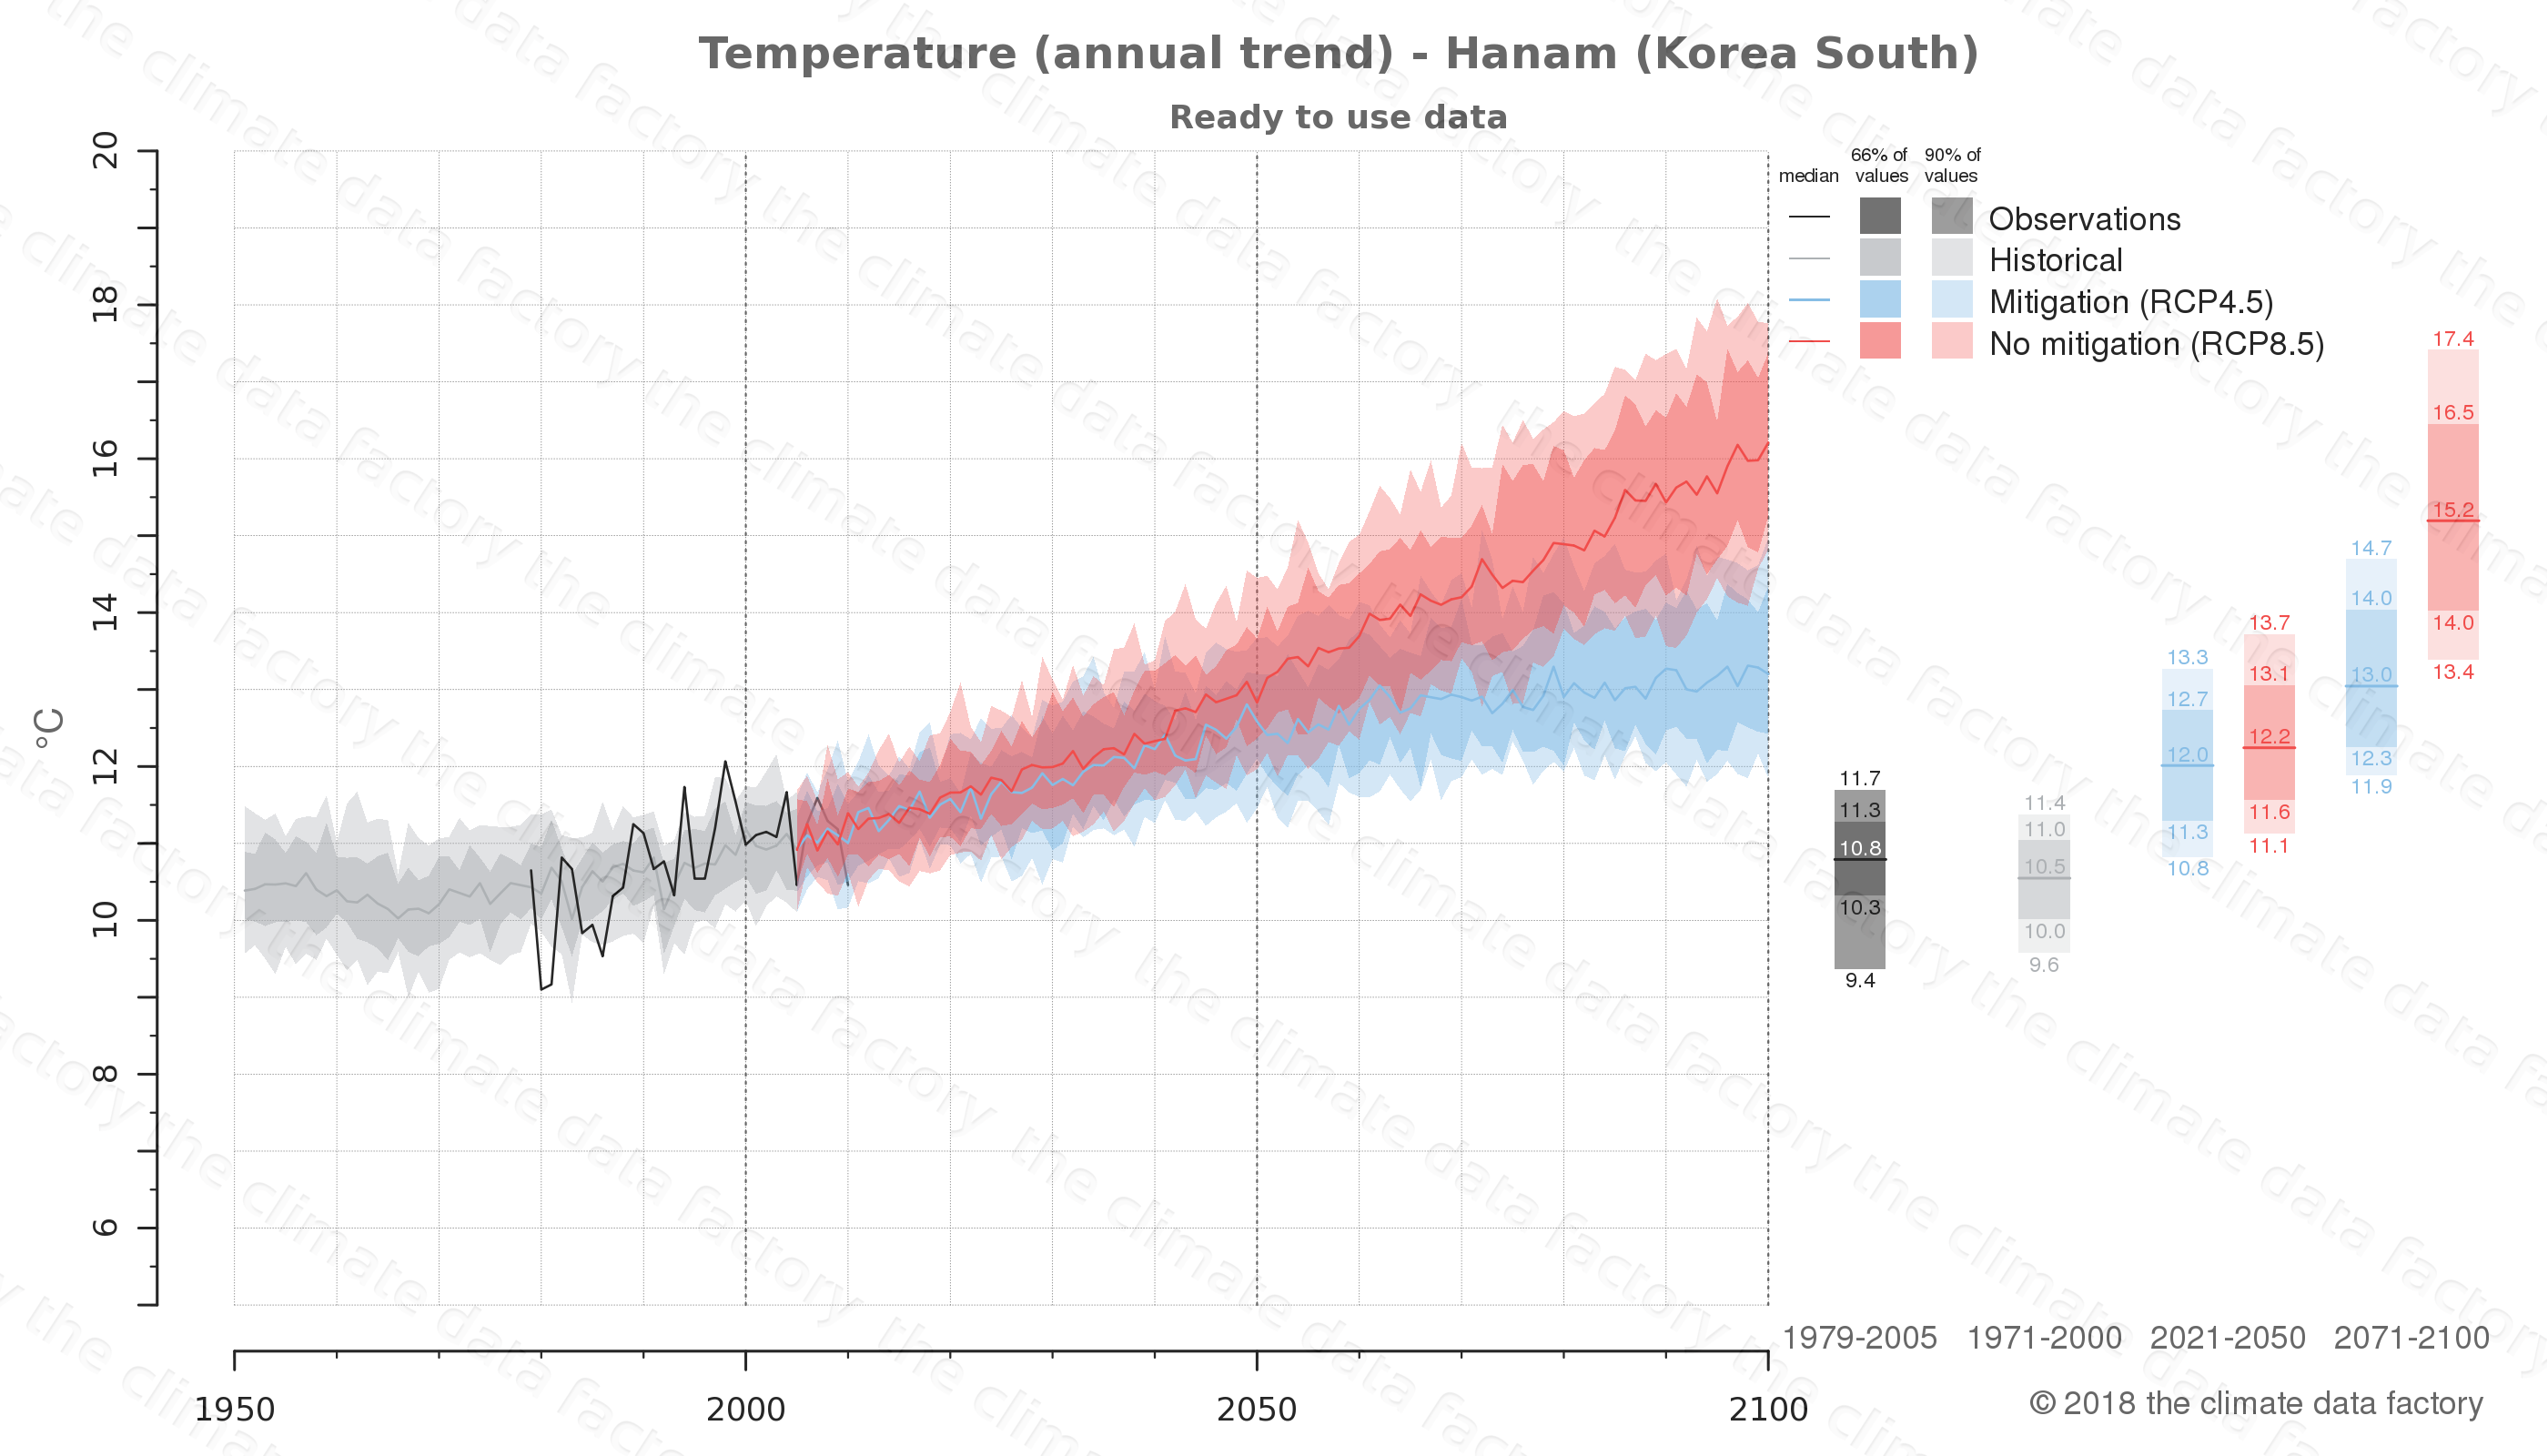 climate change data policy adaptation climate graph city data temperature hanam south korea